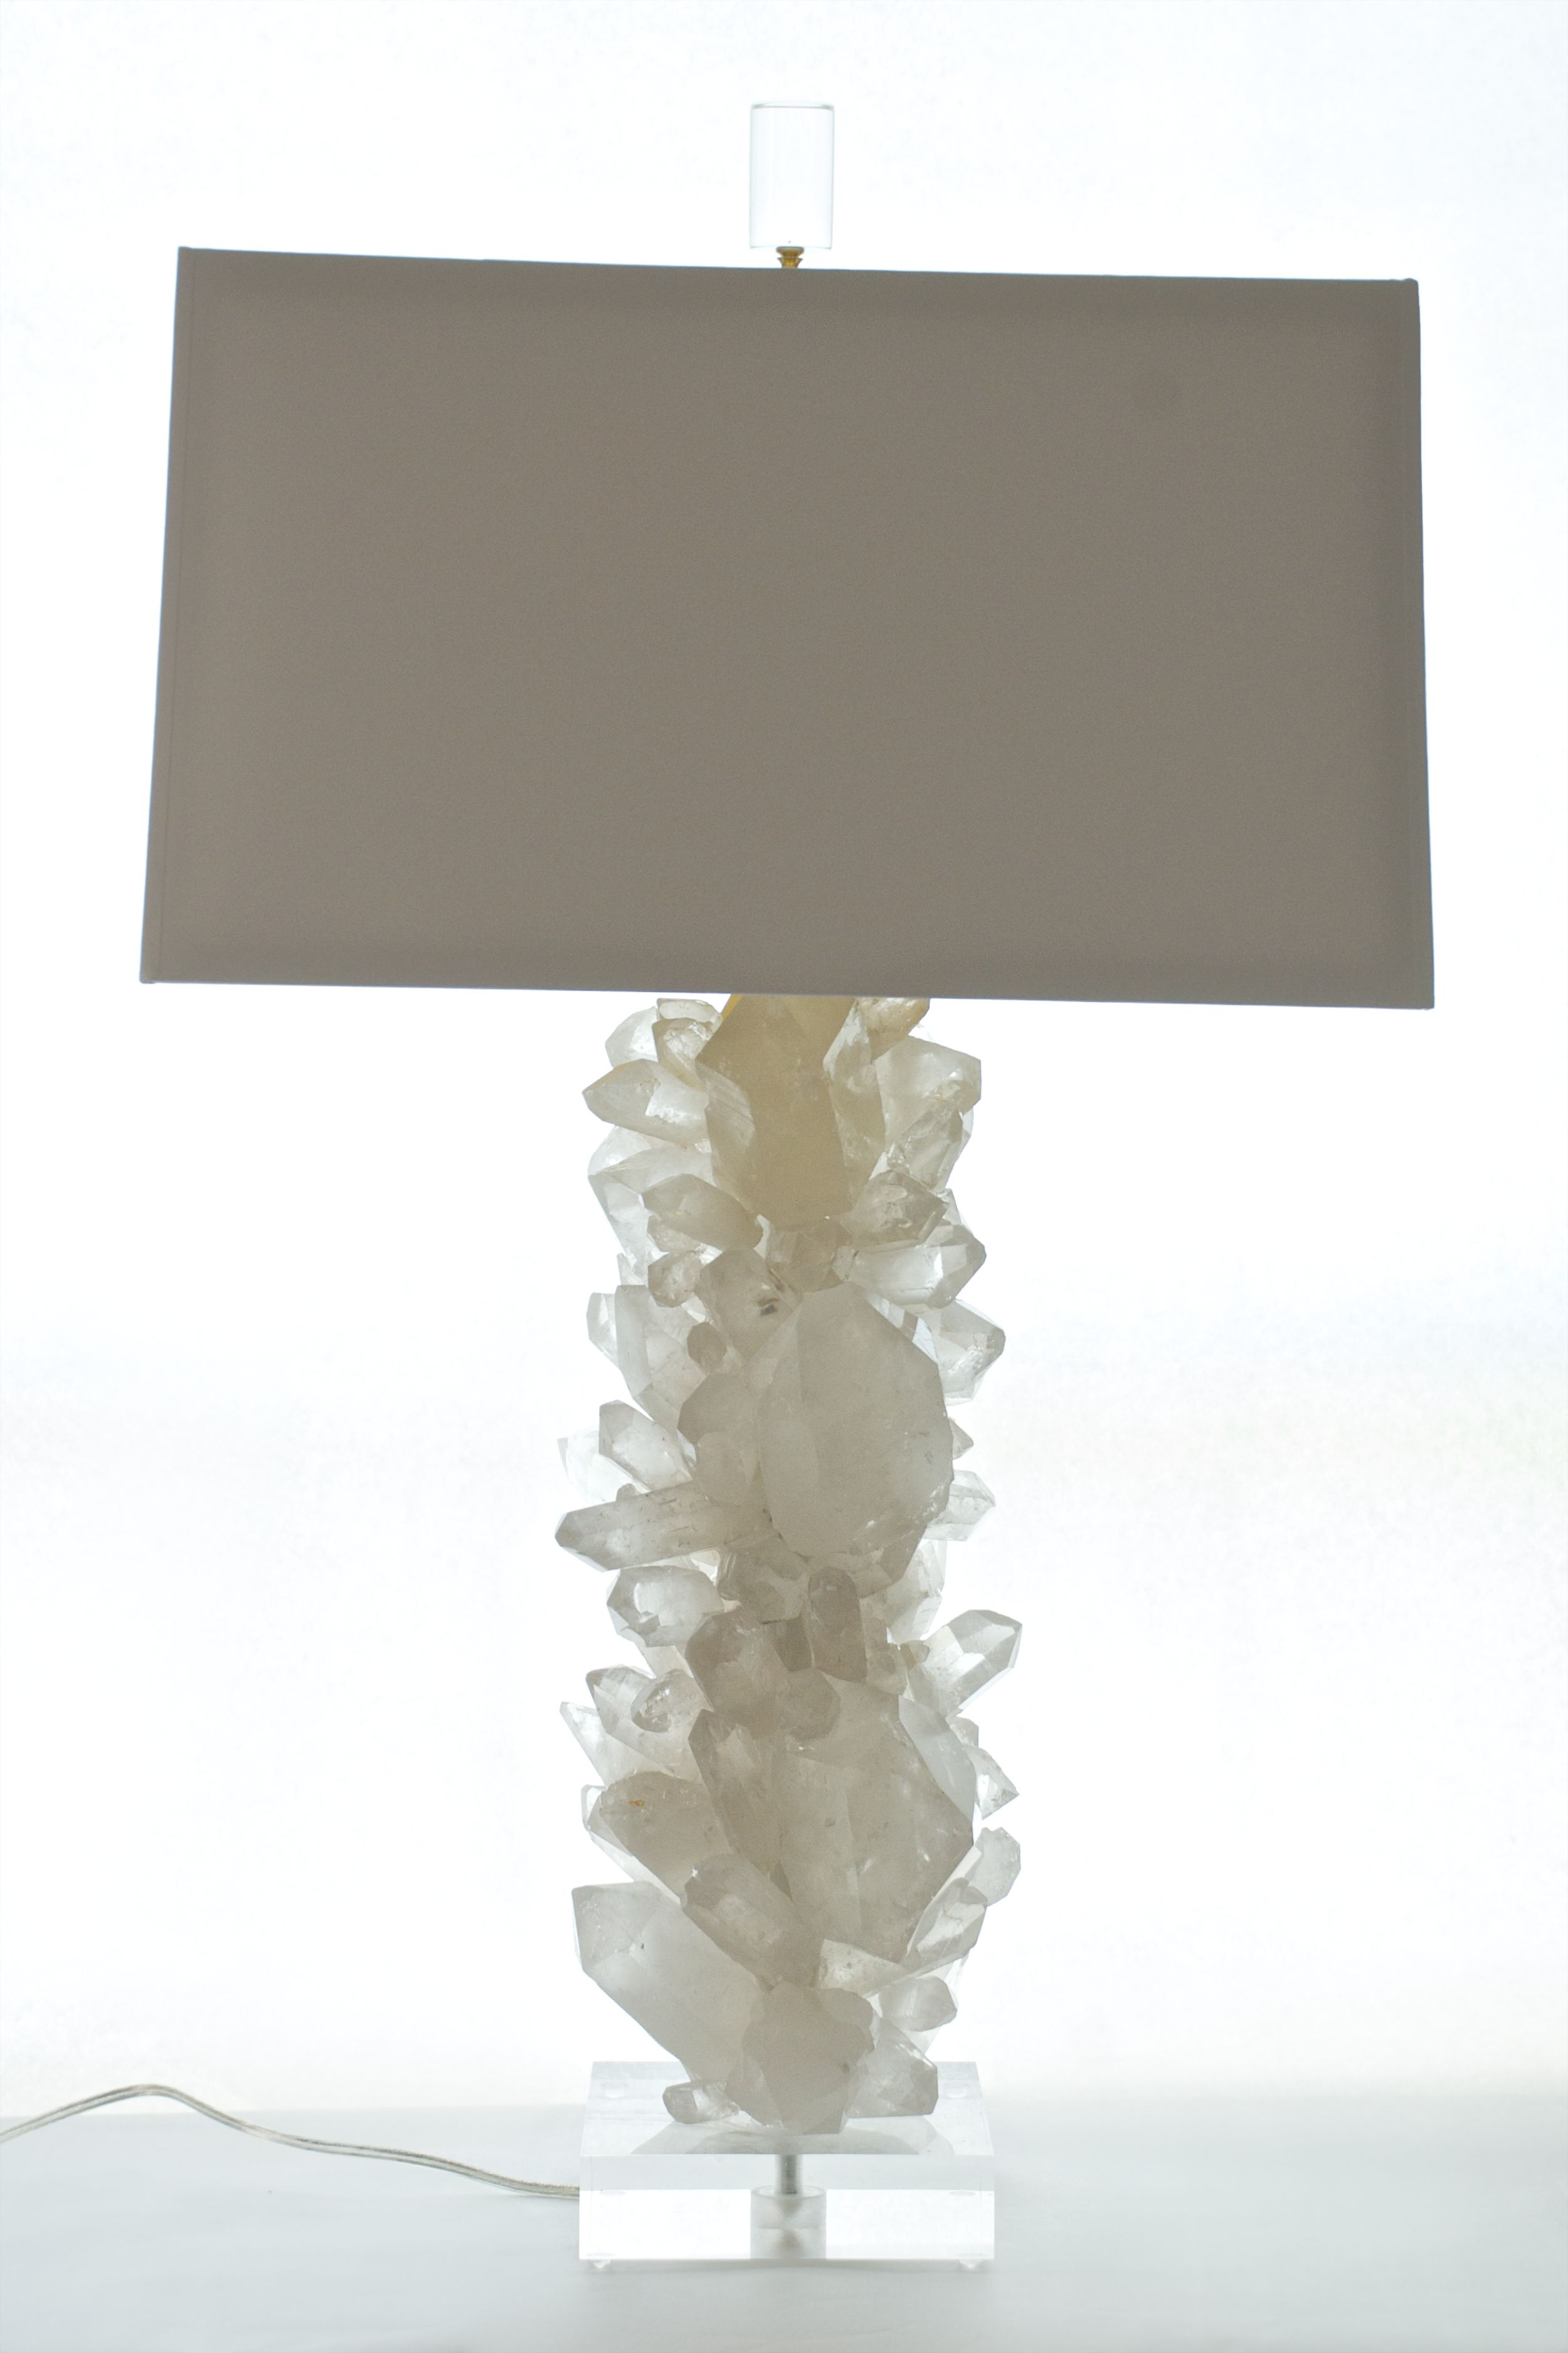 Quartz Crystal Lamp With Acrylic Base Each One Of A Kind Lamp Is Handcrafted Using Quartz Crystal Points On An Acrylic Base The Lamp S Wohnwelt Lampe Wohnen